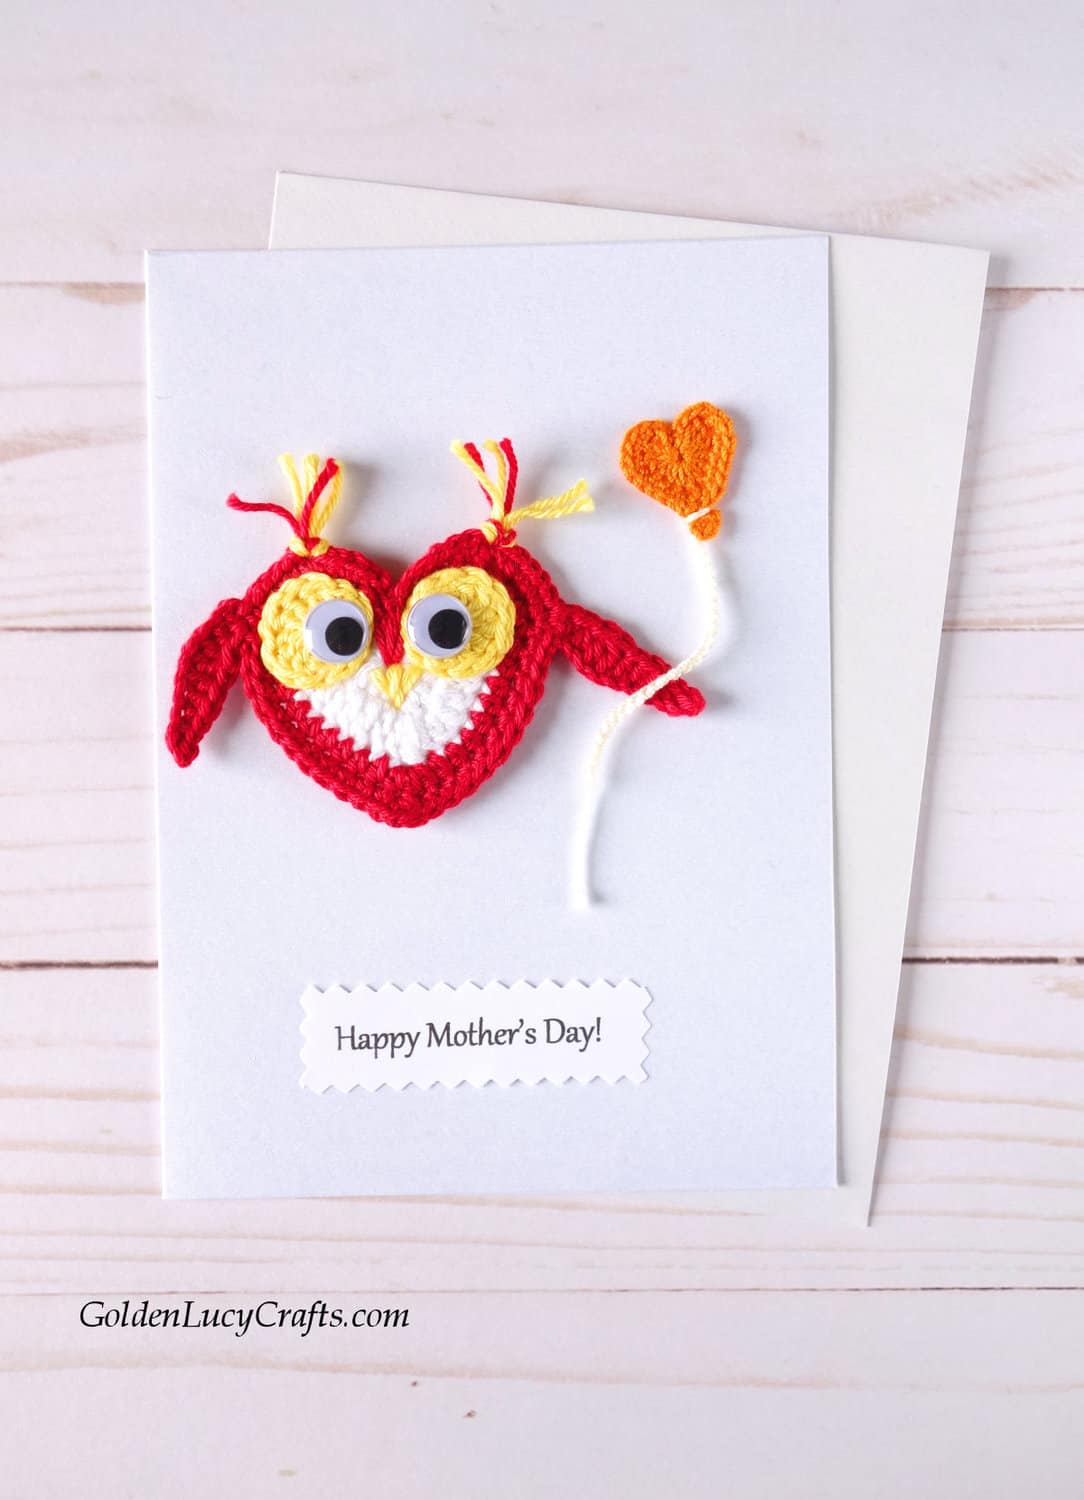 Mother's Day handmade card with crochet owl applique.